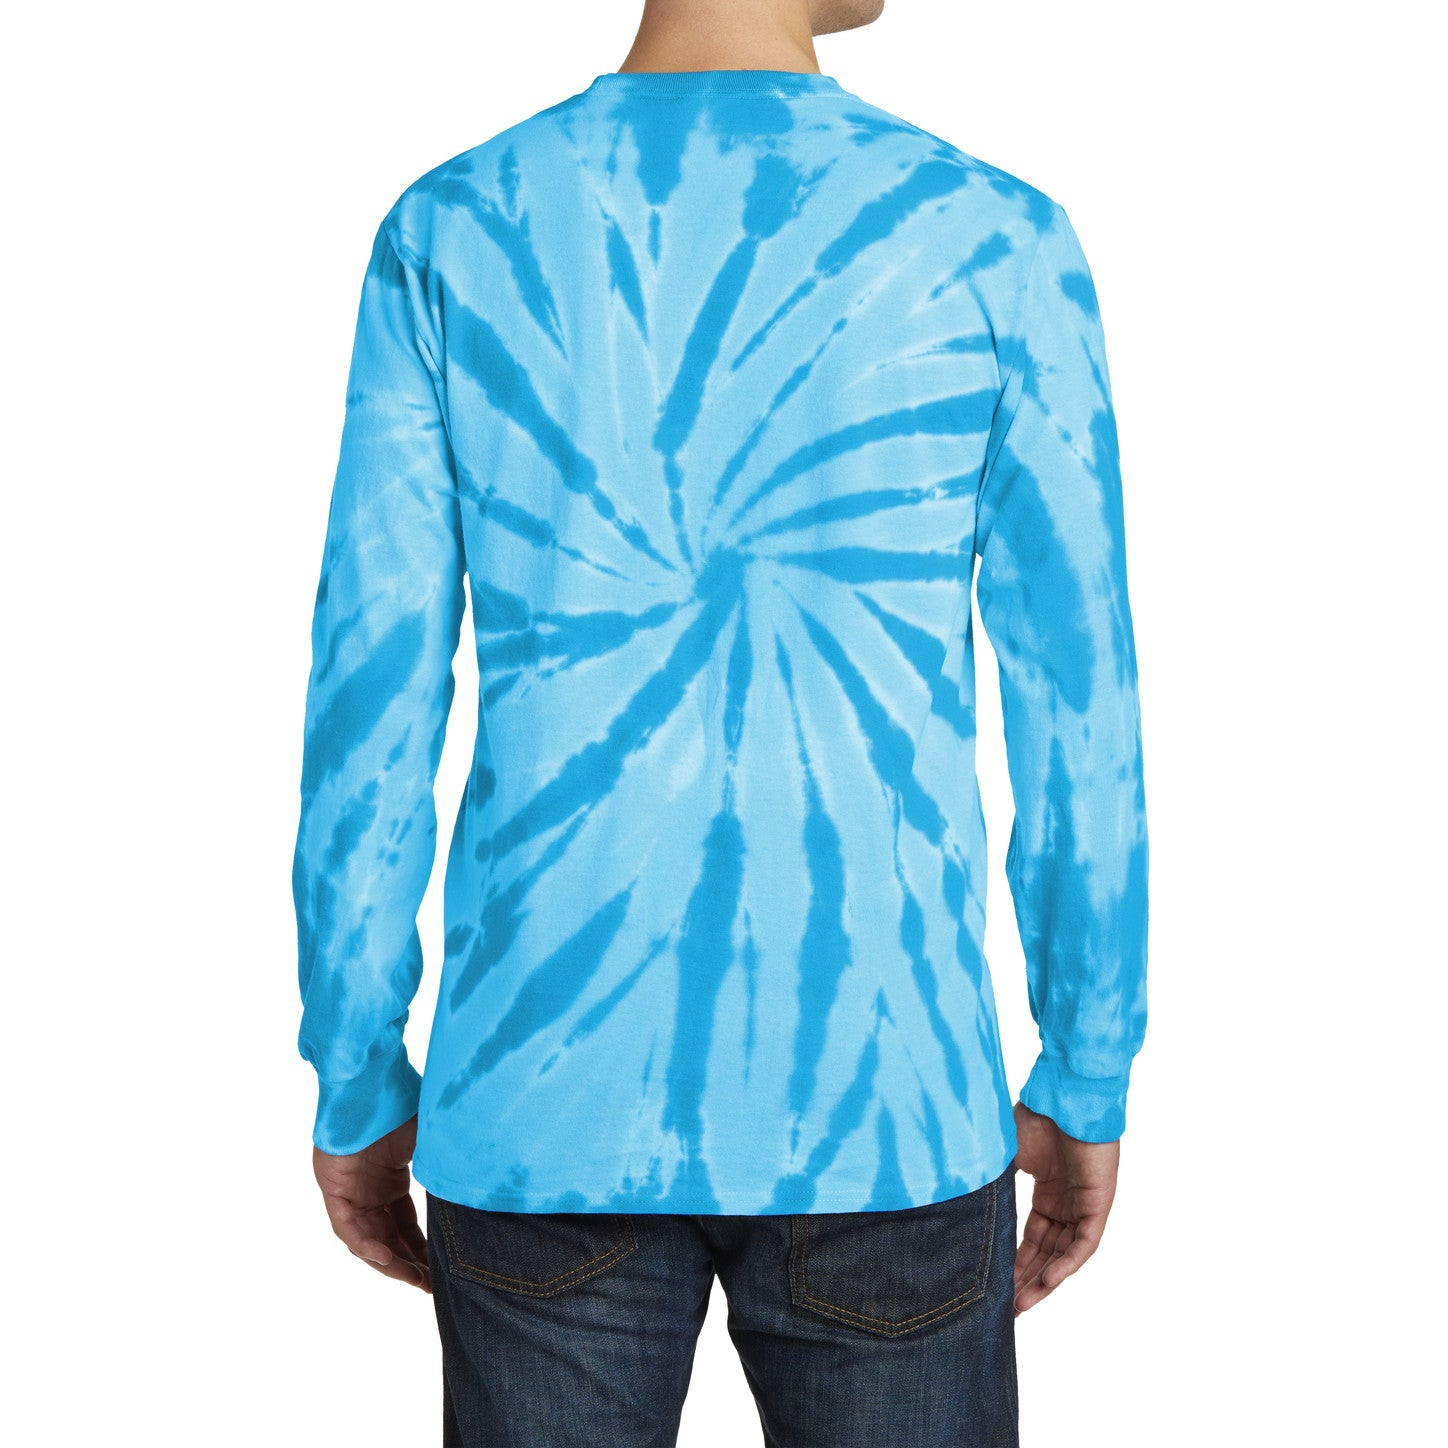 Men's Tie-Dye Long Sleeve Tee - Turquoise - Back